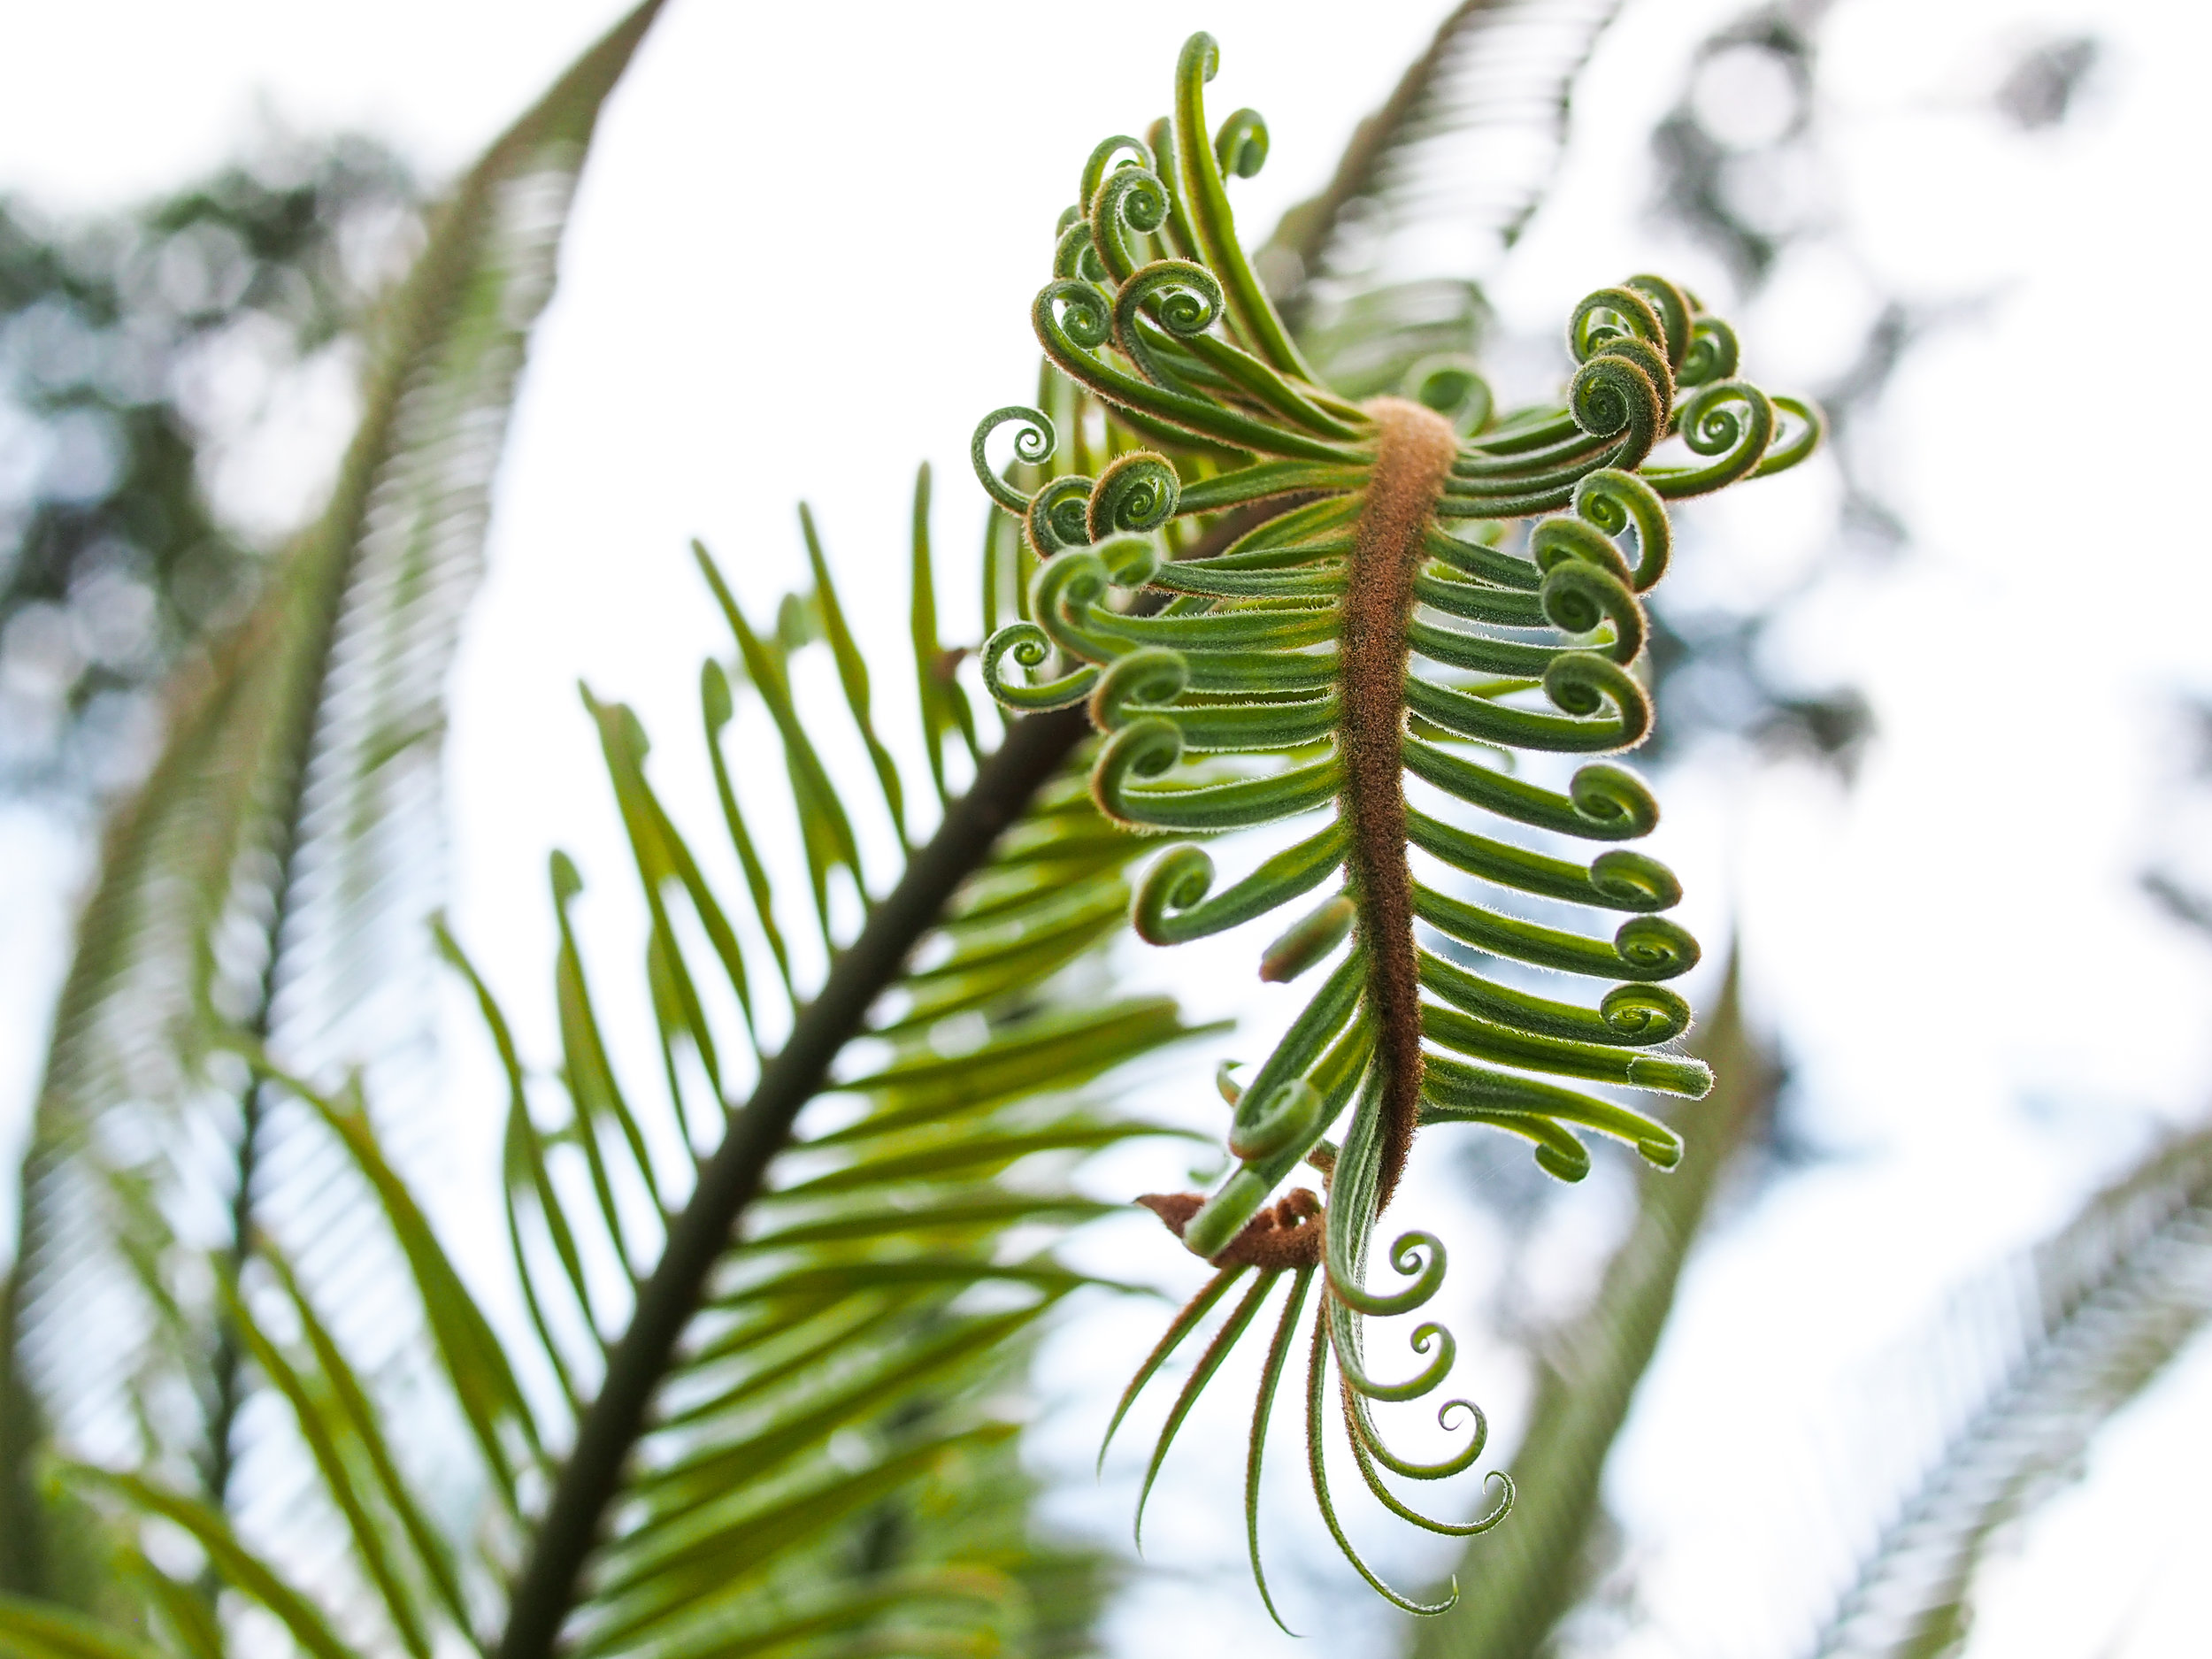 Fern - taken in the Issan province of Thailand